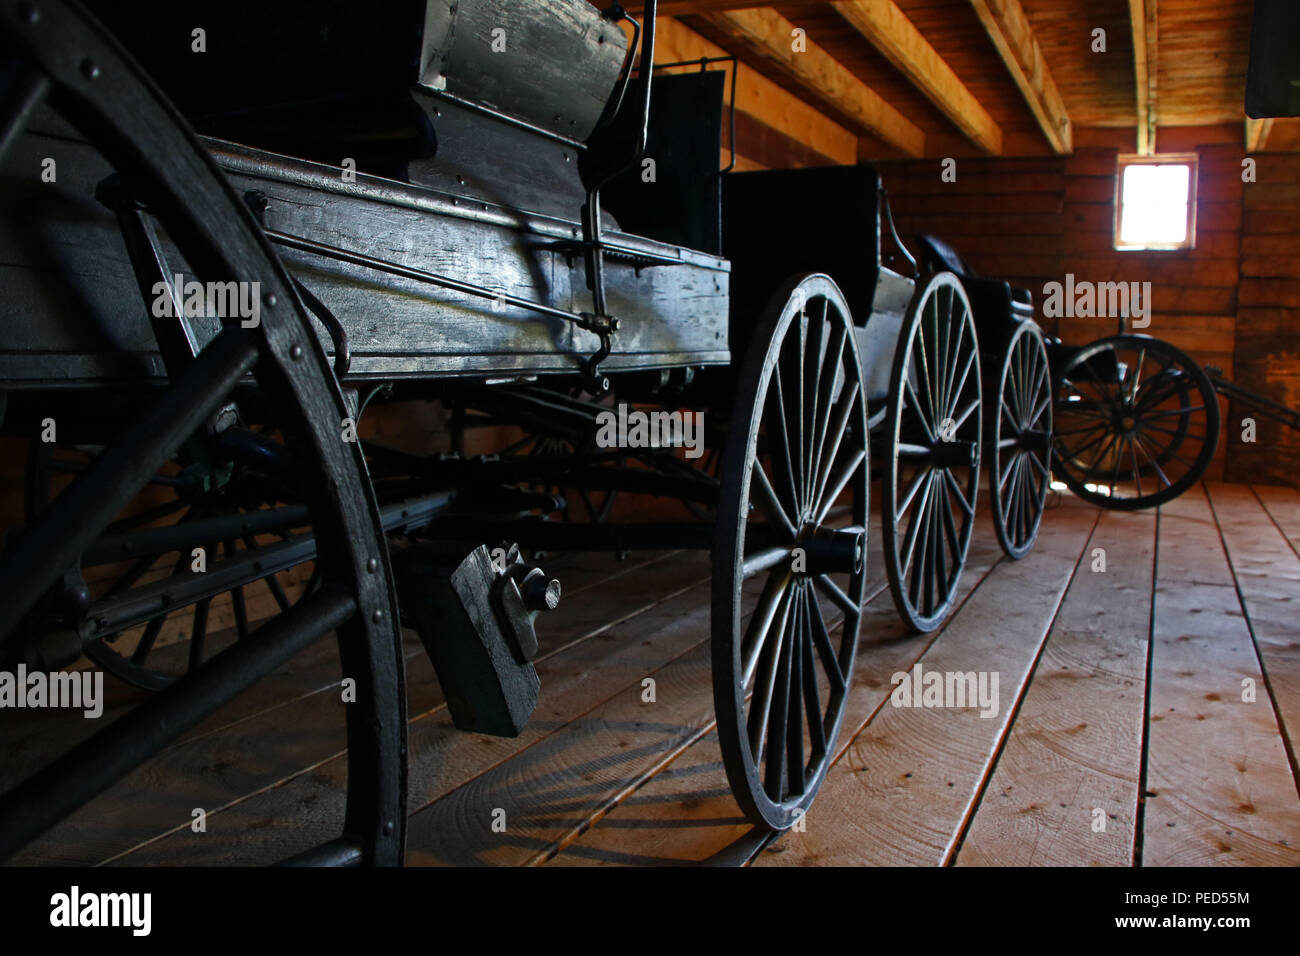 Old Carriages & wagons. Bar-U-Ranch, Alberta, Canada - Stock Image